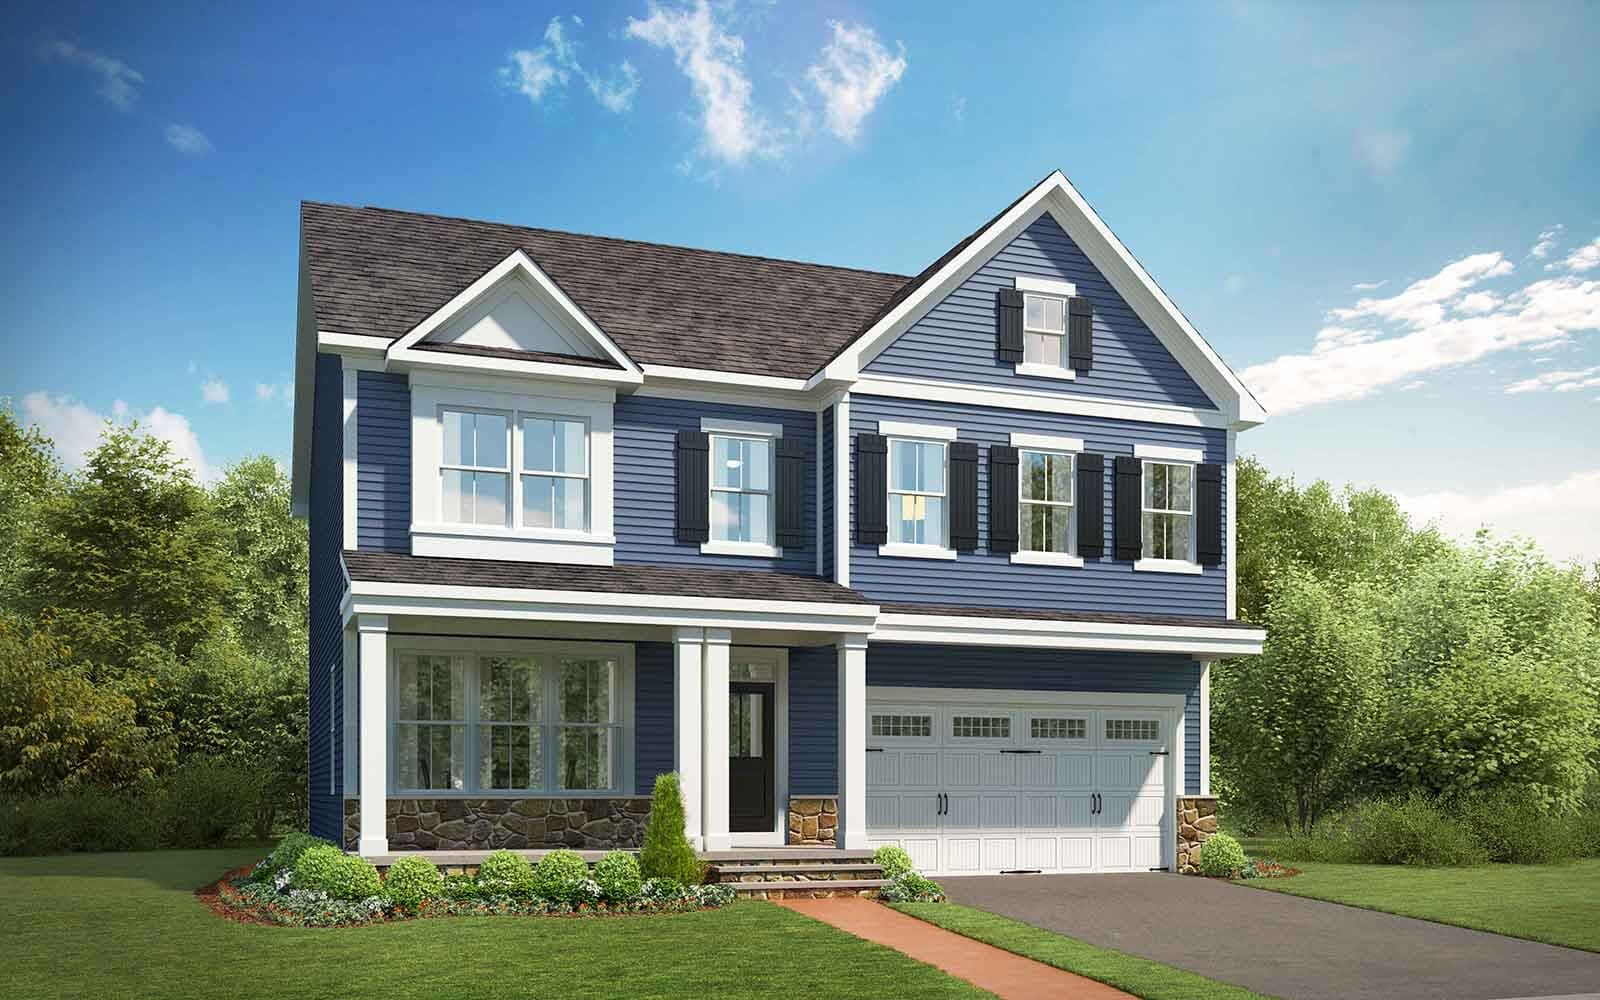 Exterior:Elevation 4 of the Manchester II a home design by Brookfield Residential at Potomac Shores